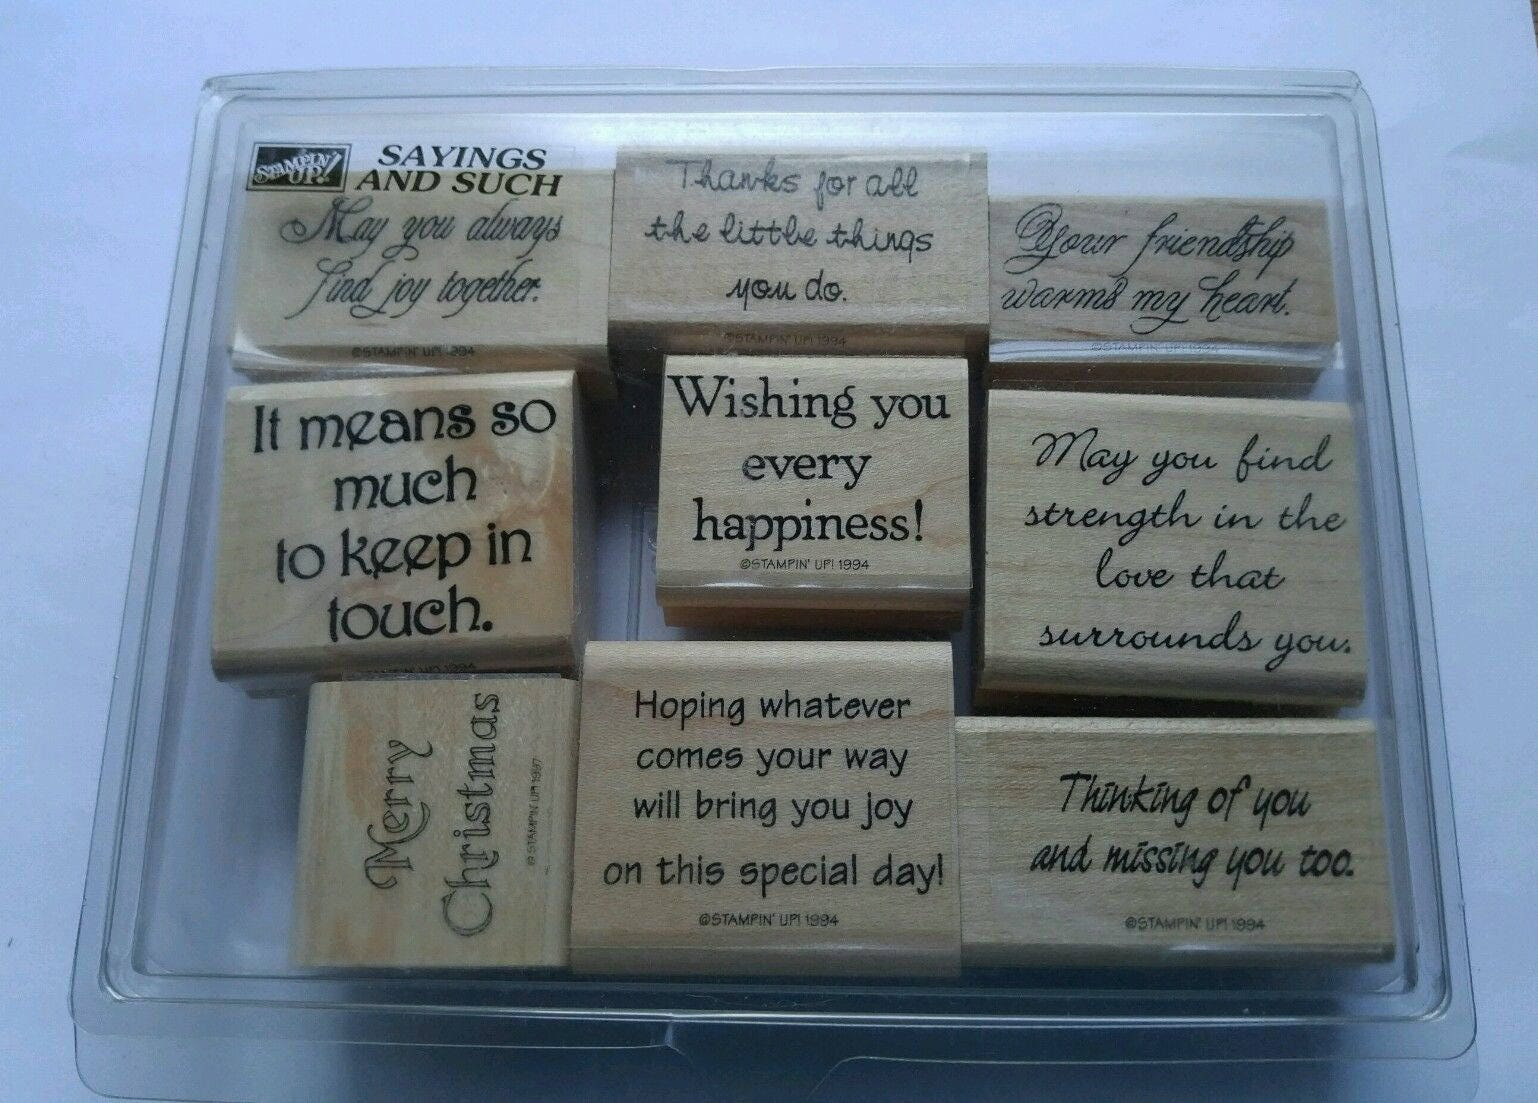 Stampin up sayings such retired set lot of 9 new 1994 phrases for get shipping estimate m4hsunfo